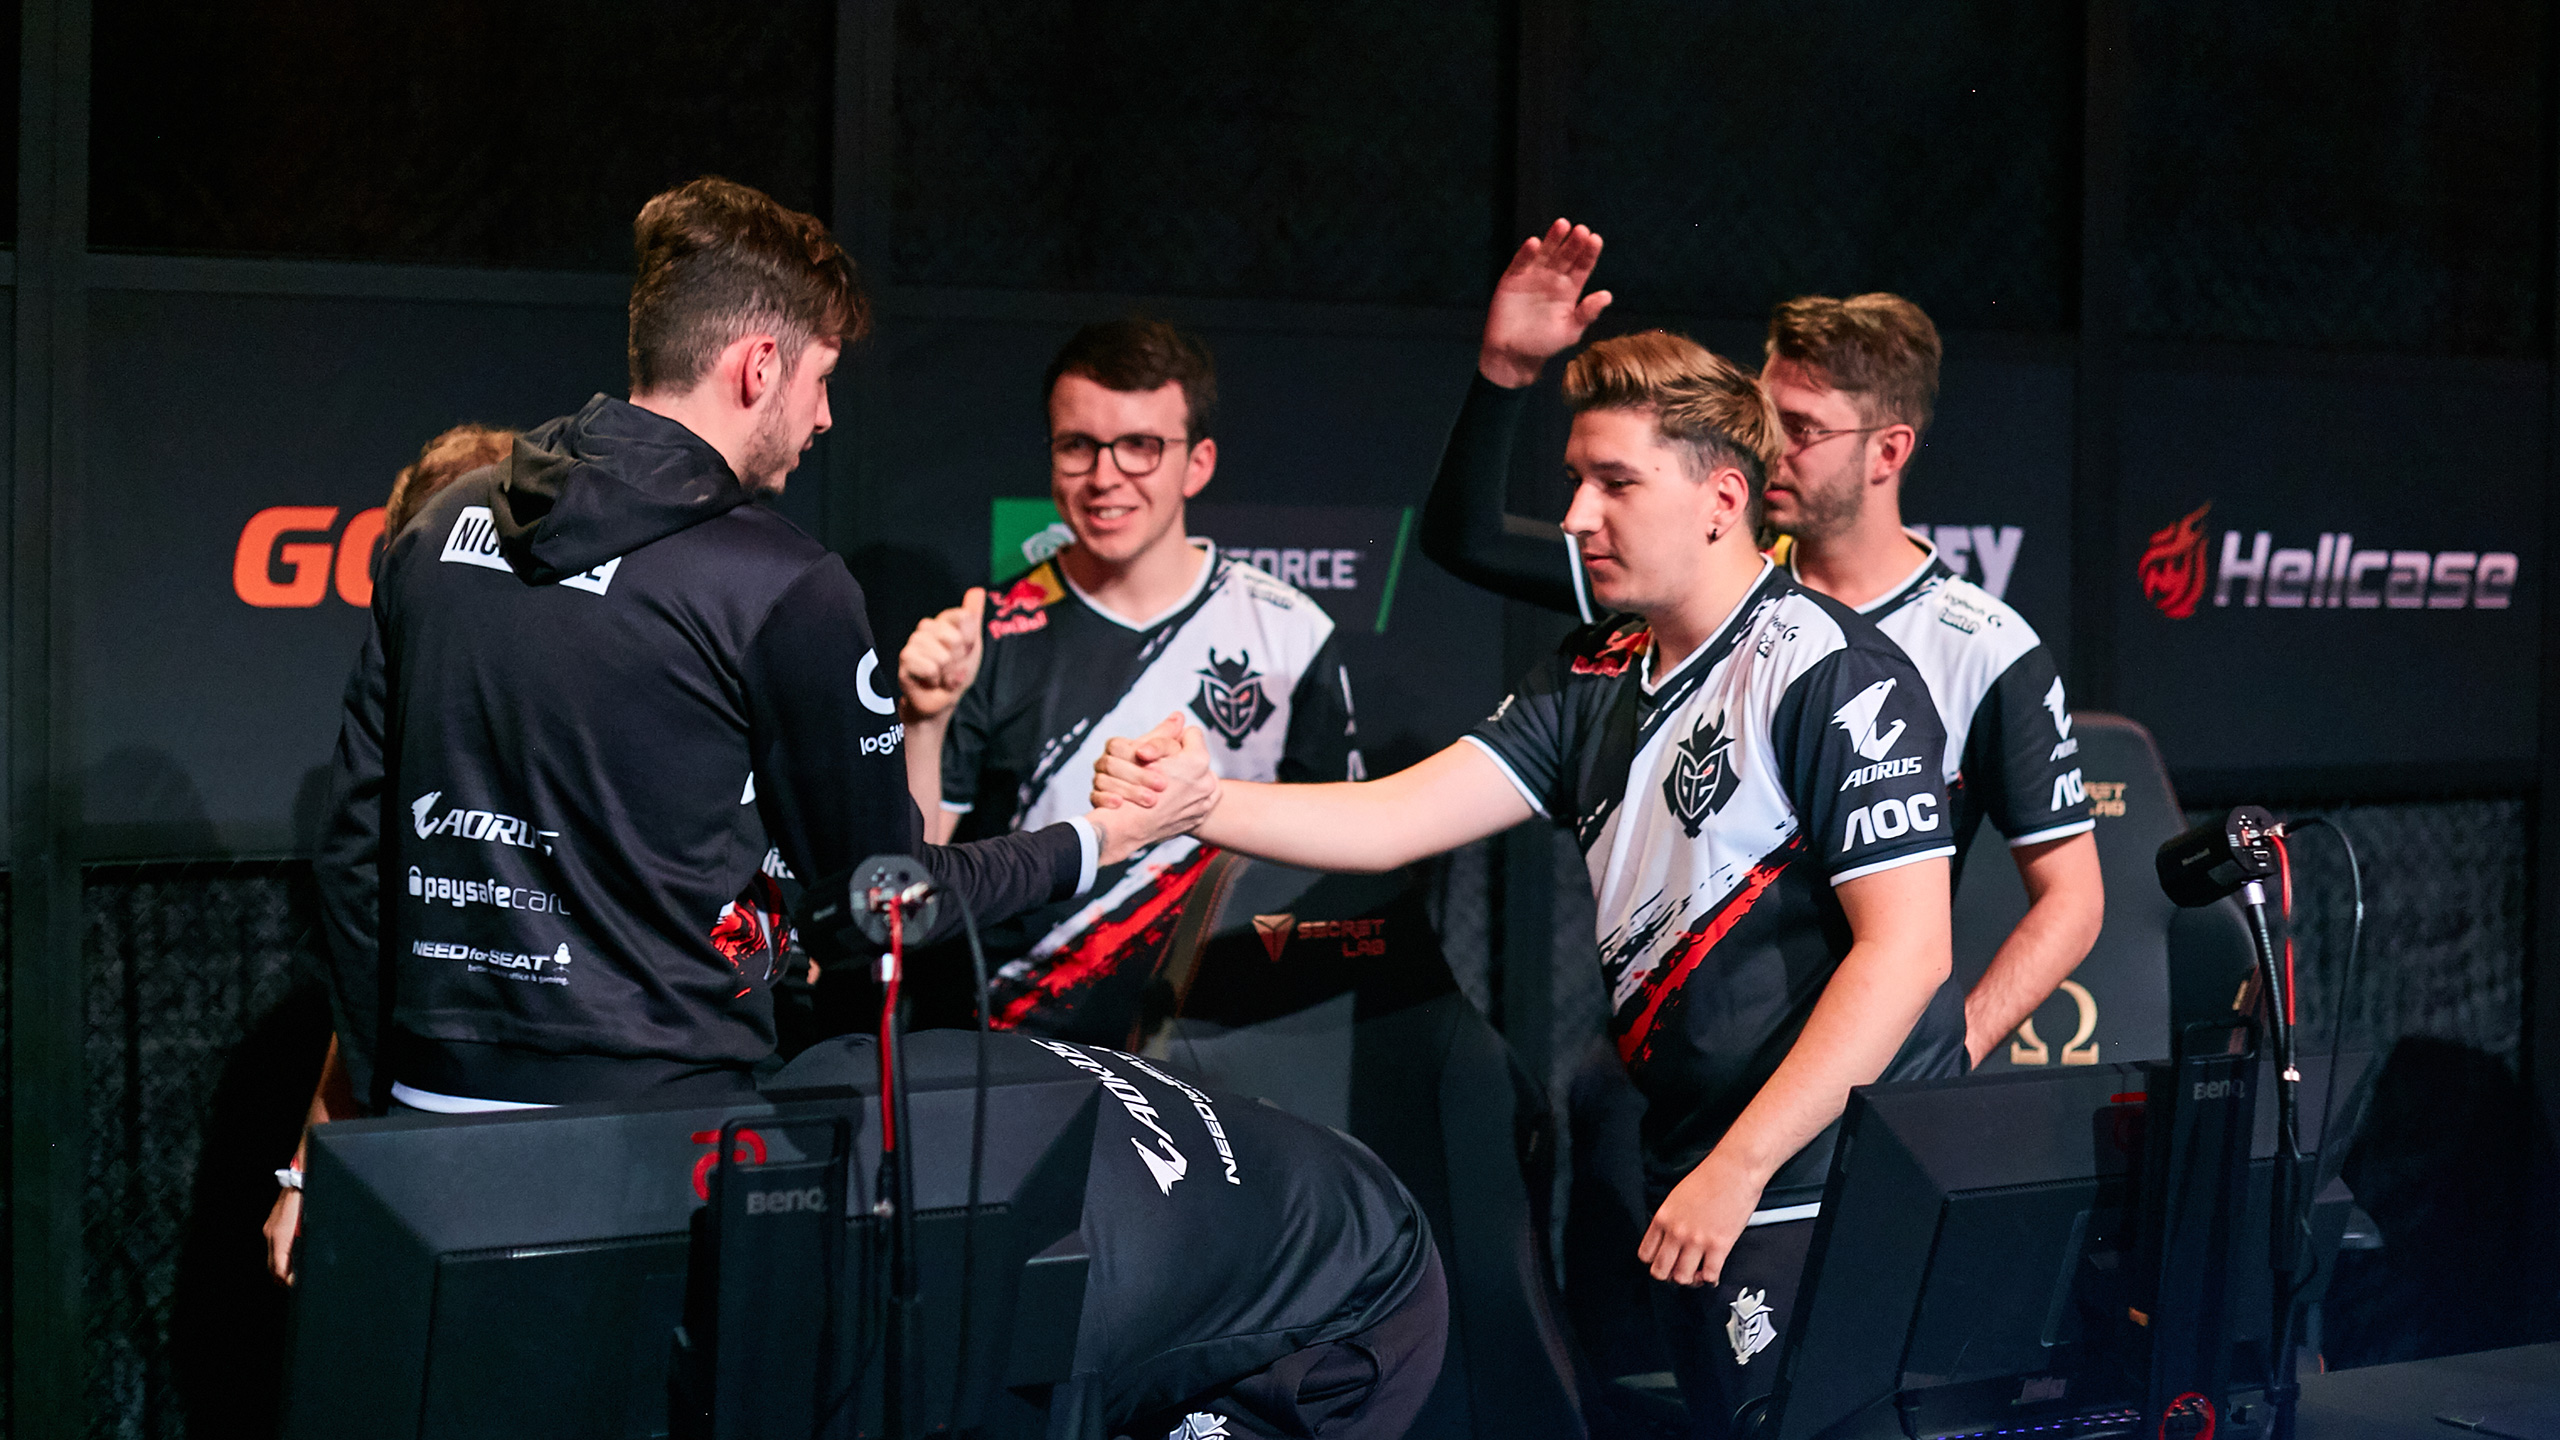 G2 Esports StarSeries i-League CS:GO Season 8